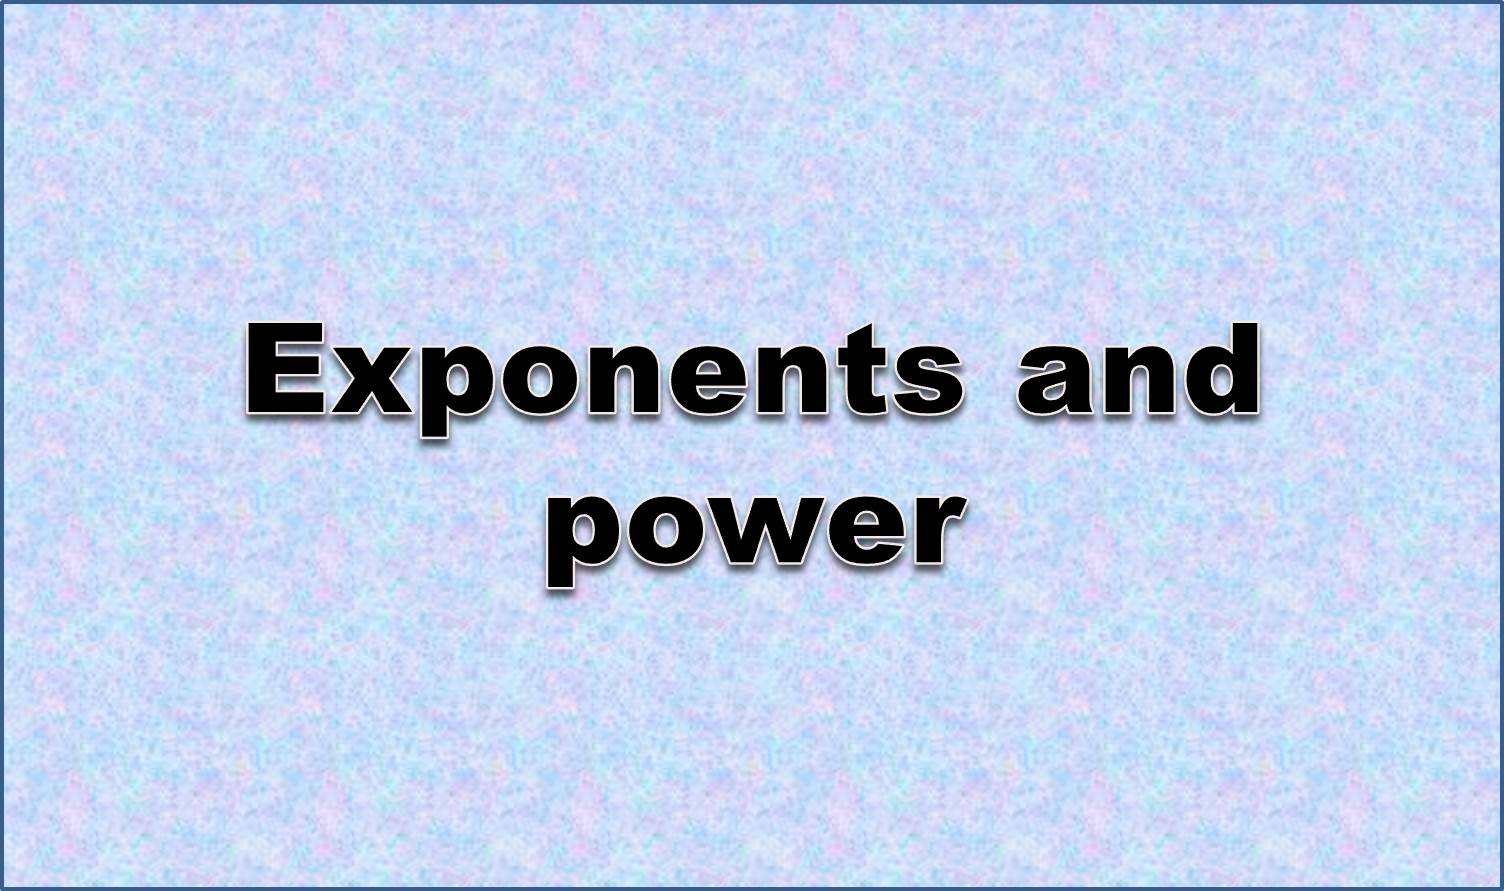 http://study.aisectonline.com/images/Worked examples-Exponent properties.jpg